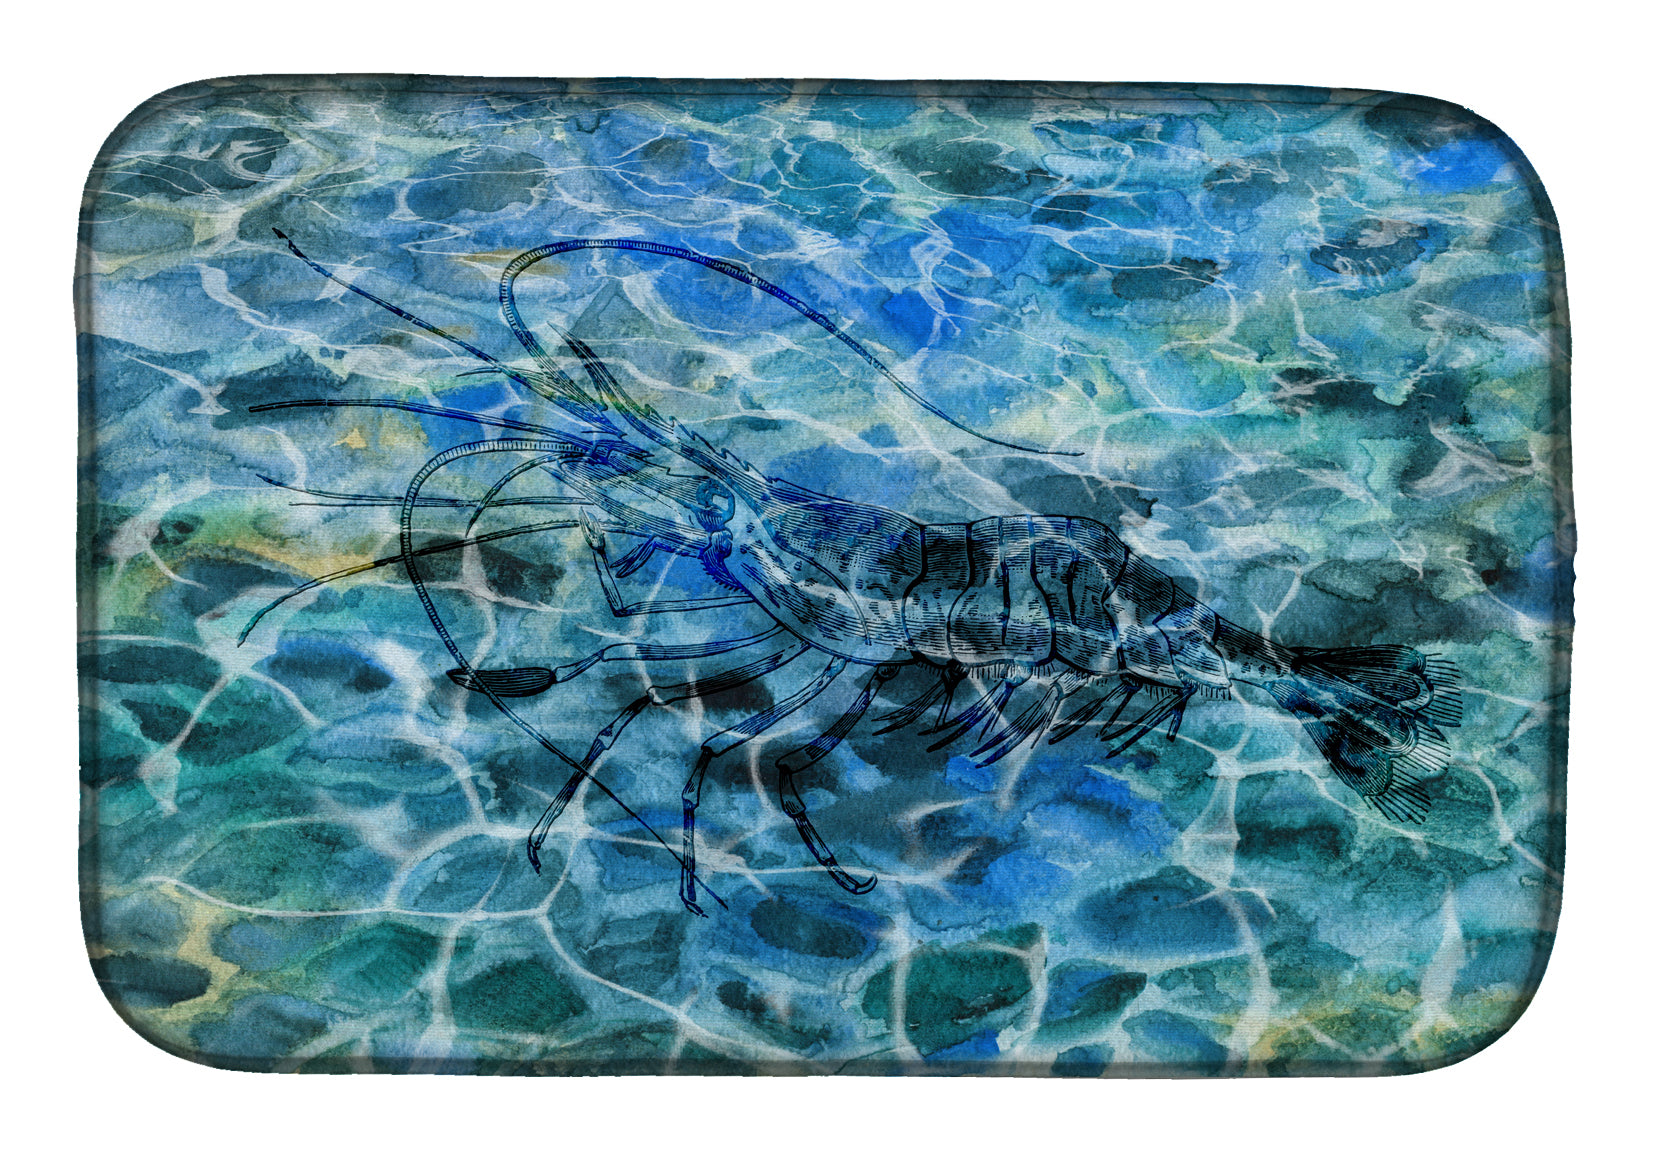 Shrimp Under water Dish Drying Mat BB5359DDM by Caroline's Treasures